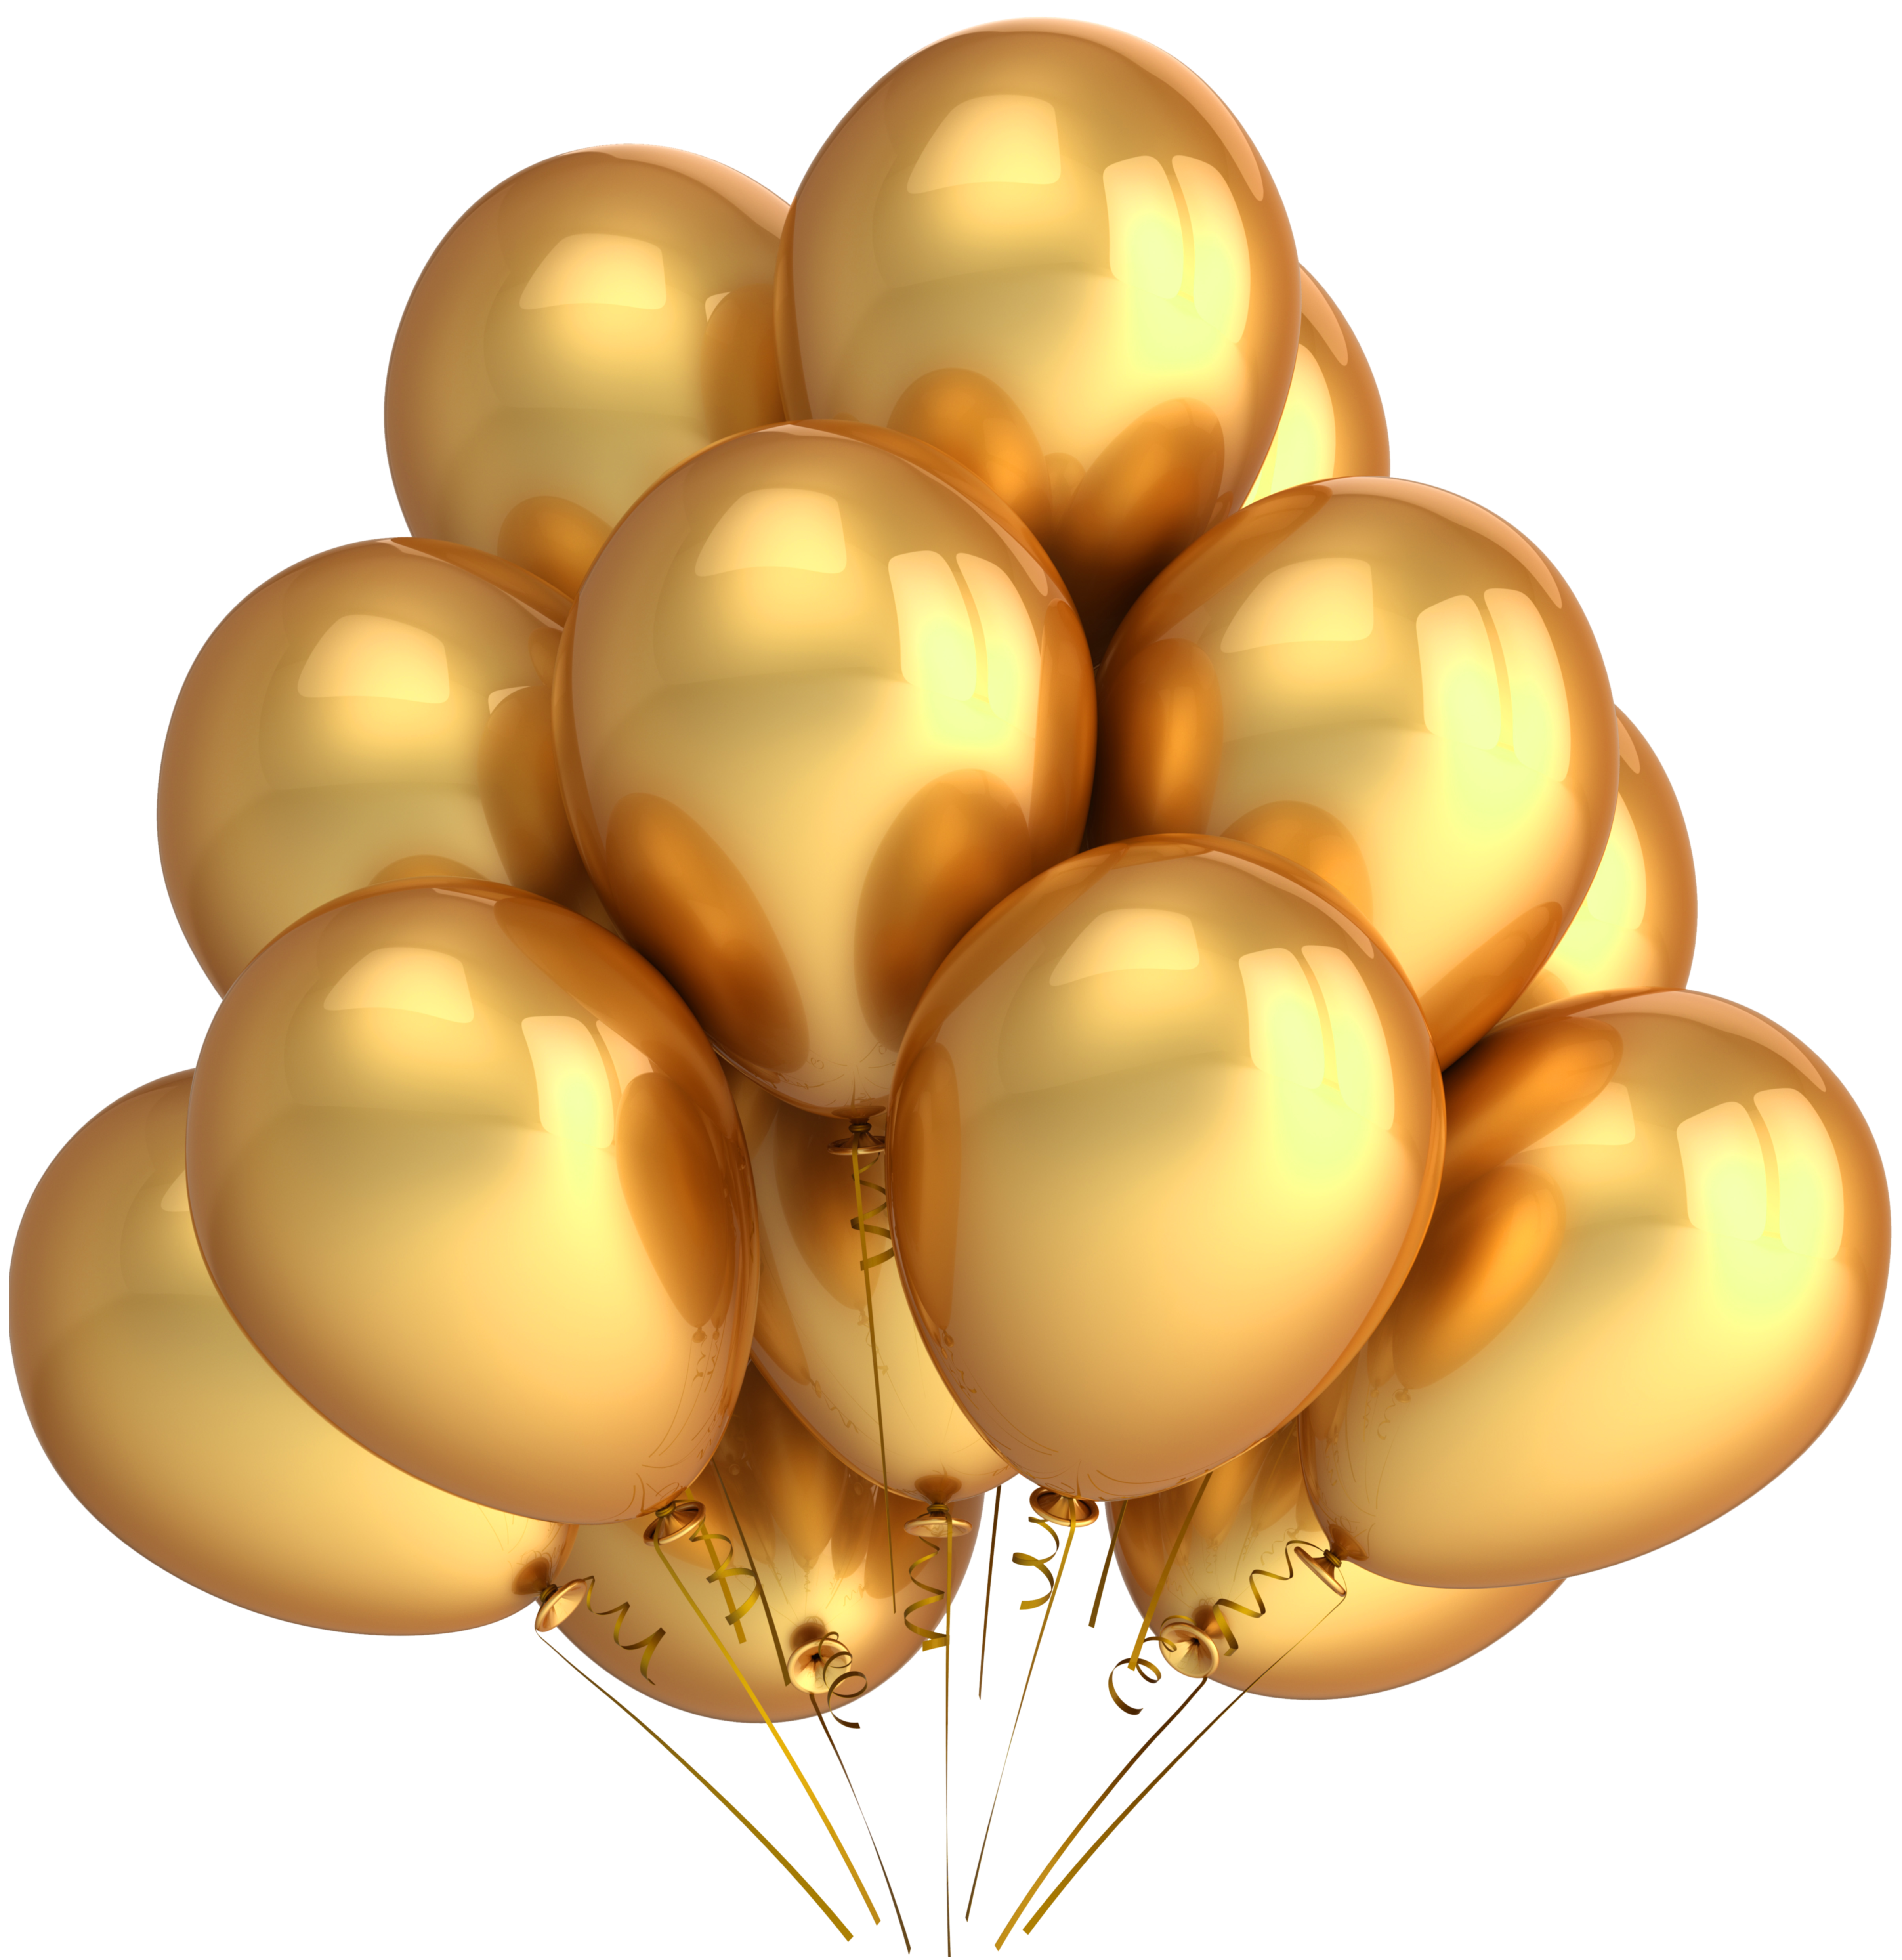 Golden clipart #3, Download drawings